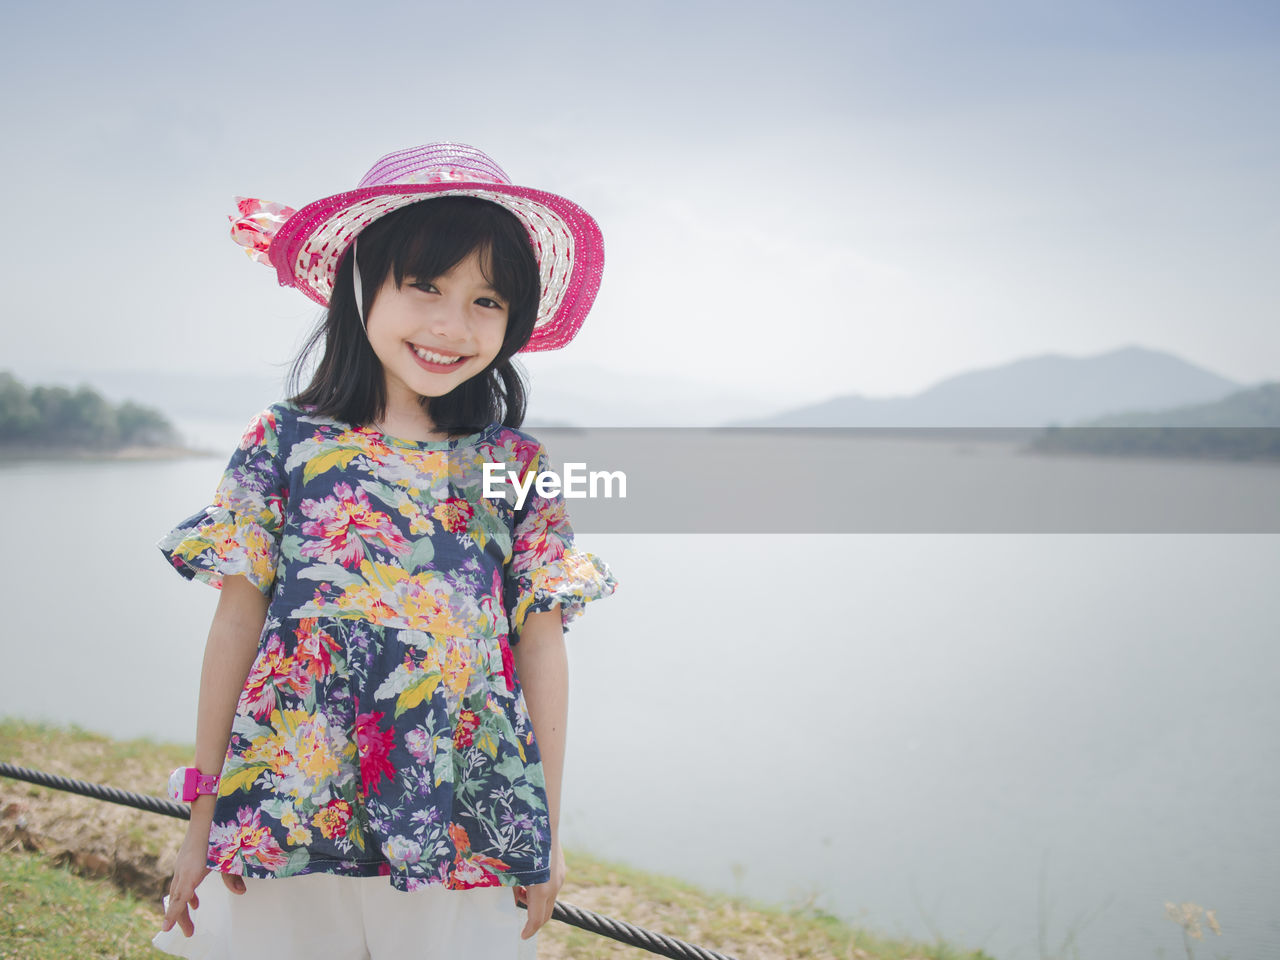 Portrait of smiling girl wearing hat standing by lake